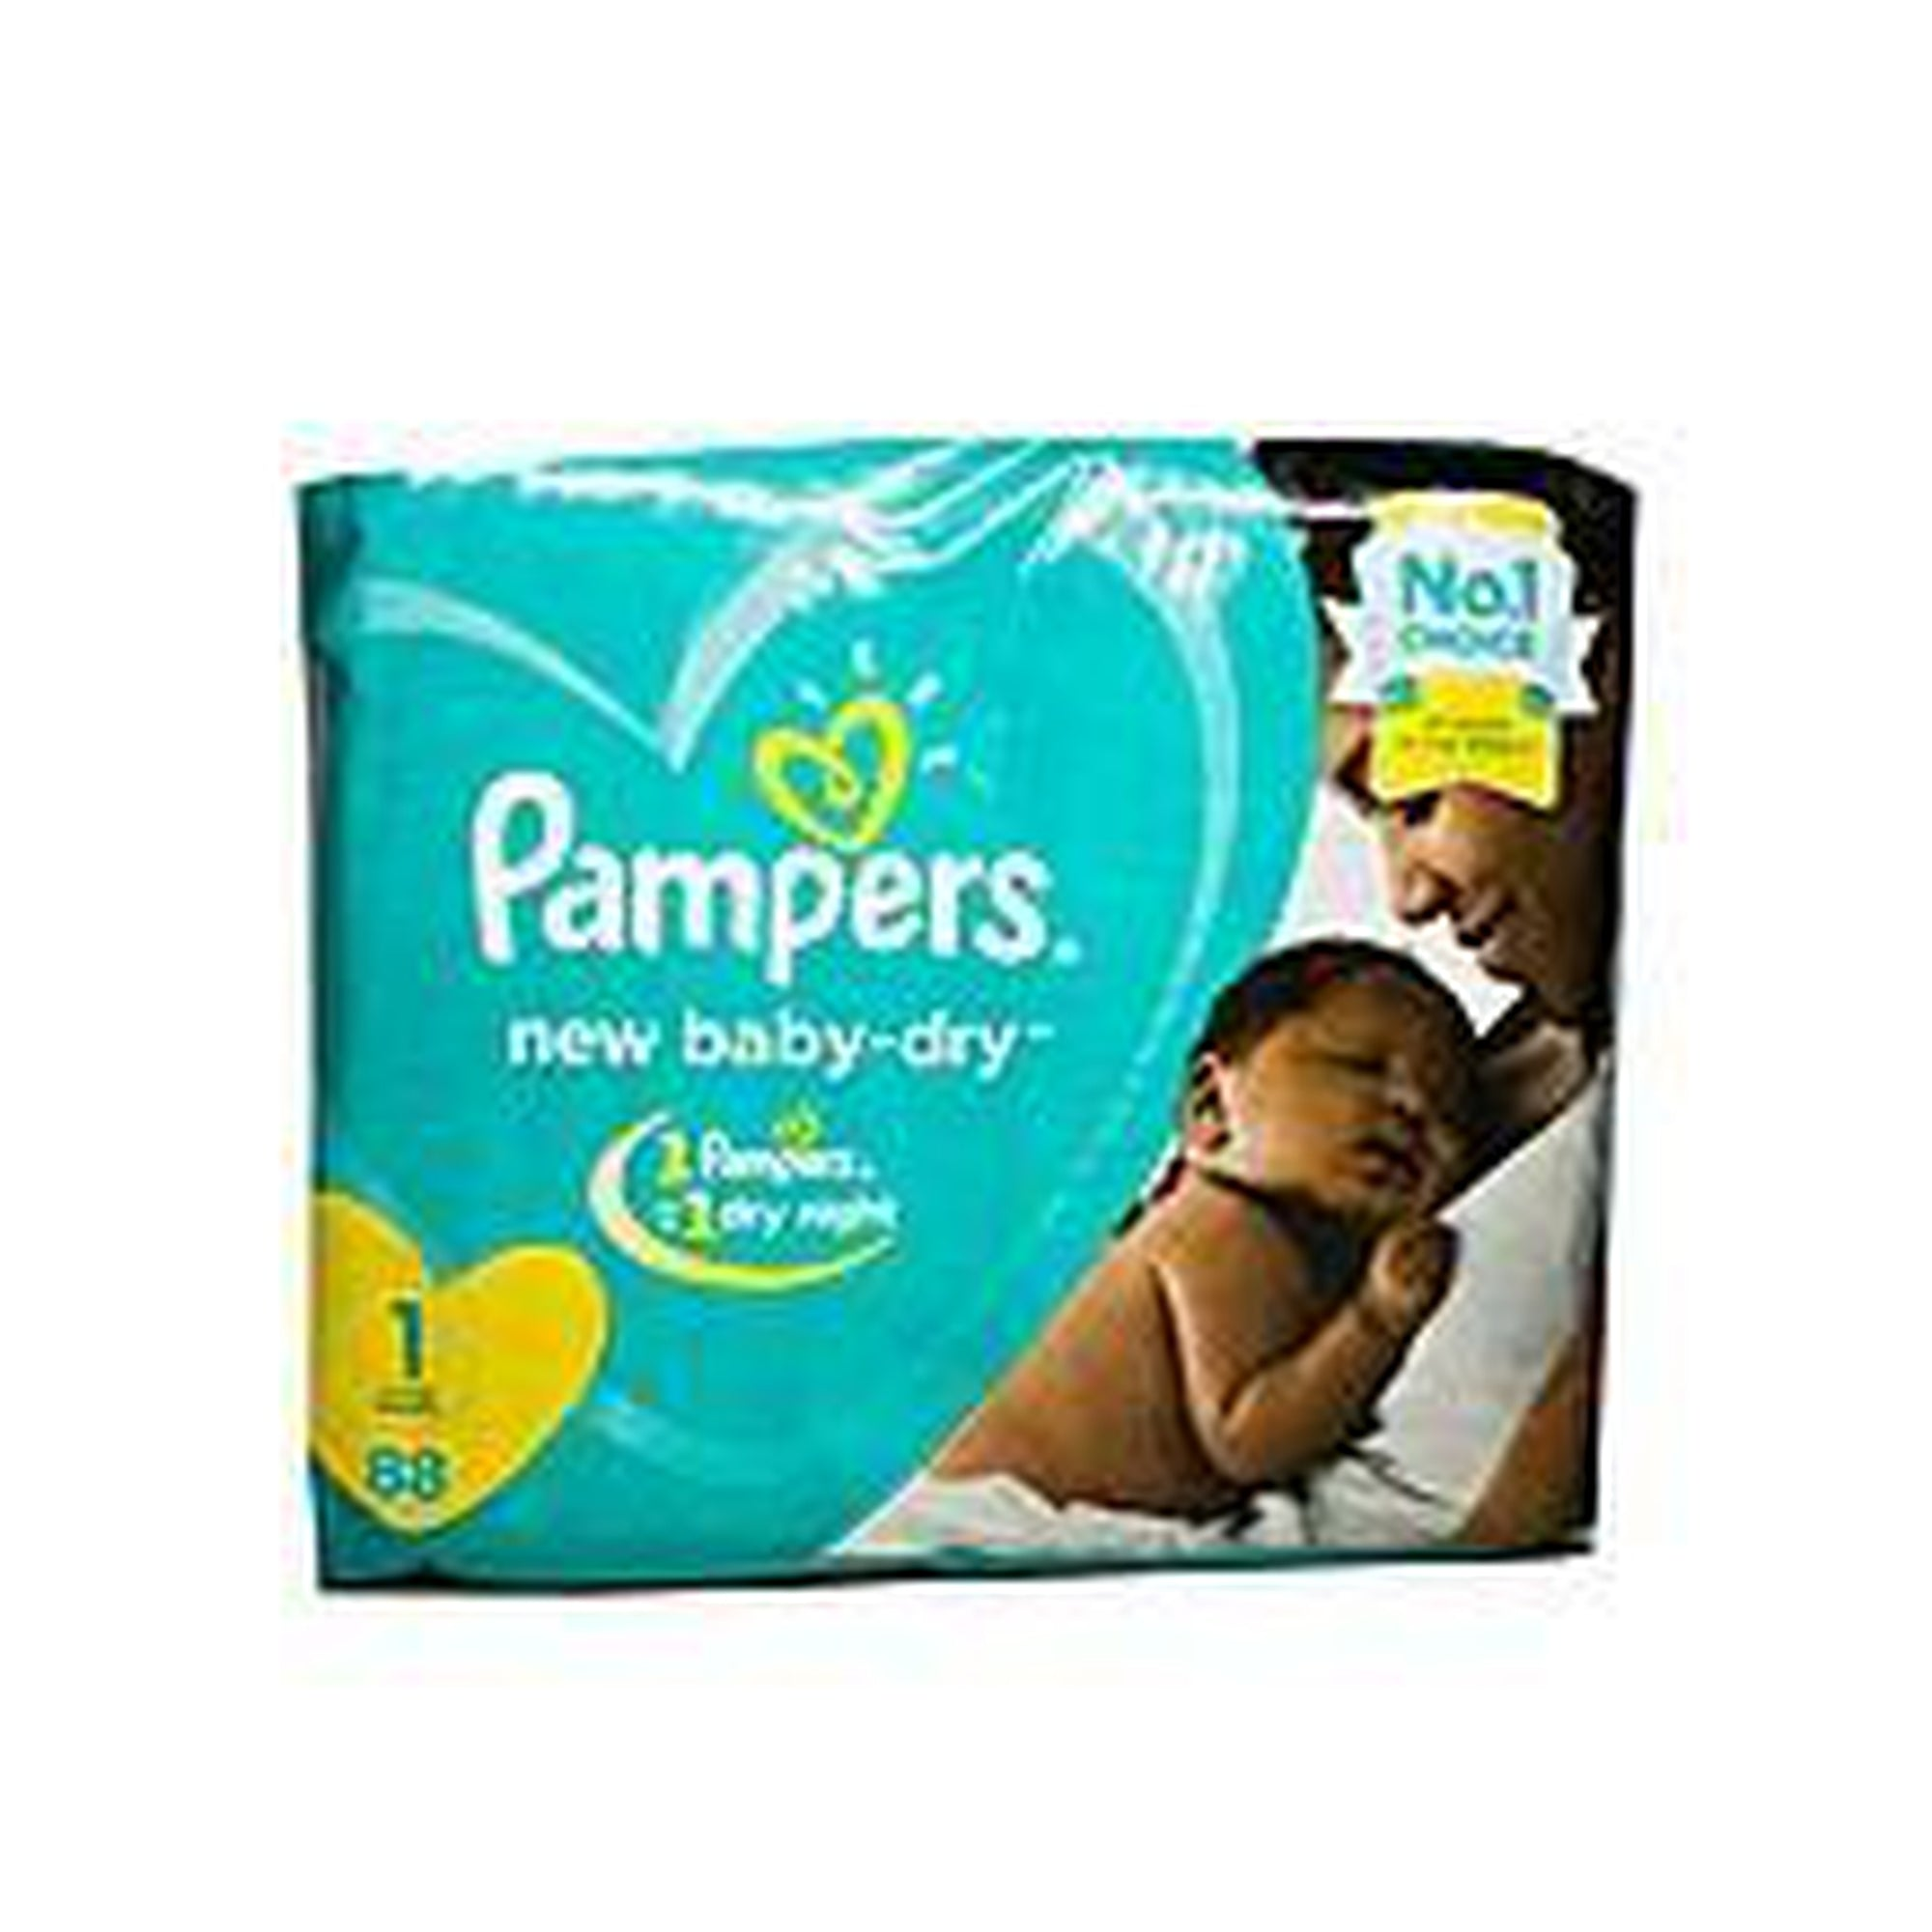 Pampers Diaper New Baby Dry Jumbo Pack S1 (2-5 Kgs) 88-Diapers-Mother and Baby Shop Kenya's #1 Online Baby Shop